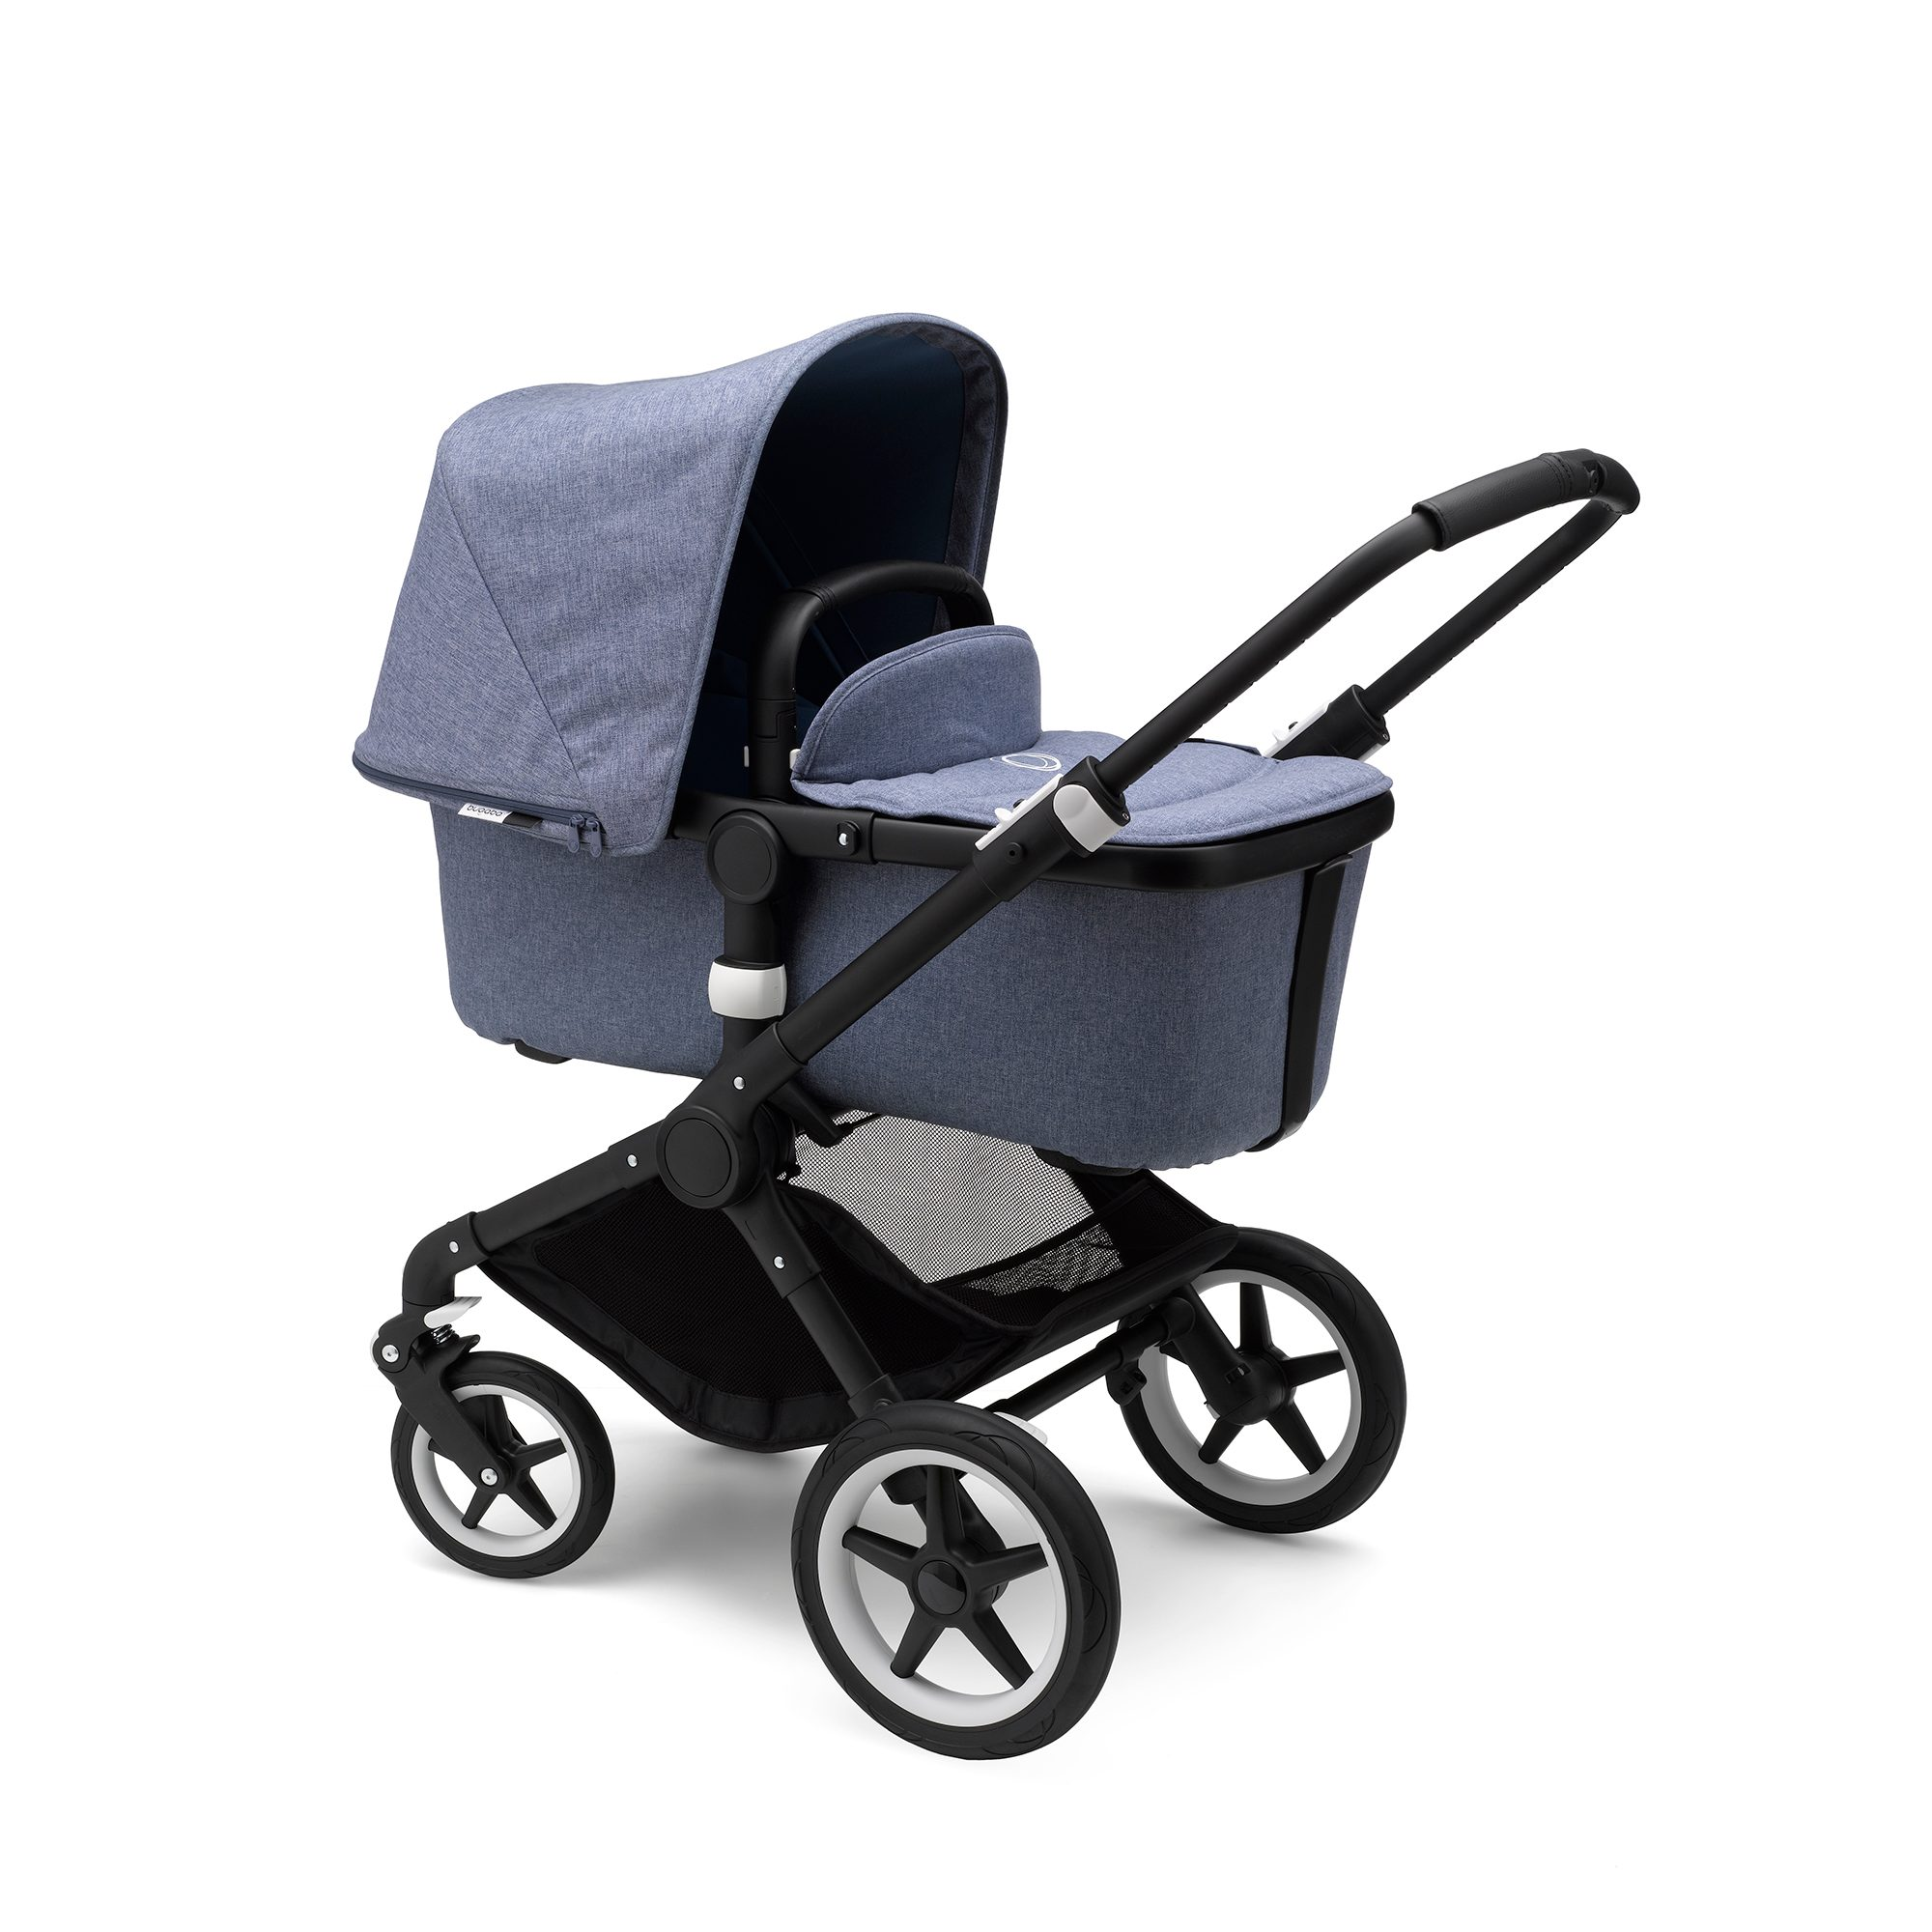 Baby Prams For Sale Uk 10 Of The Best Prams Buggies And Pushchairs According To